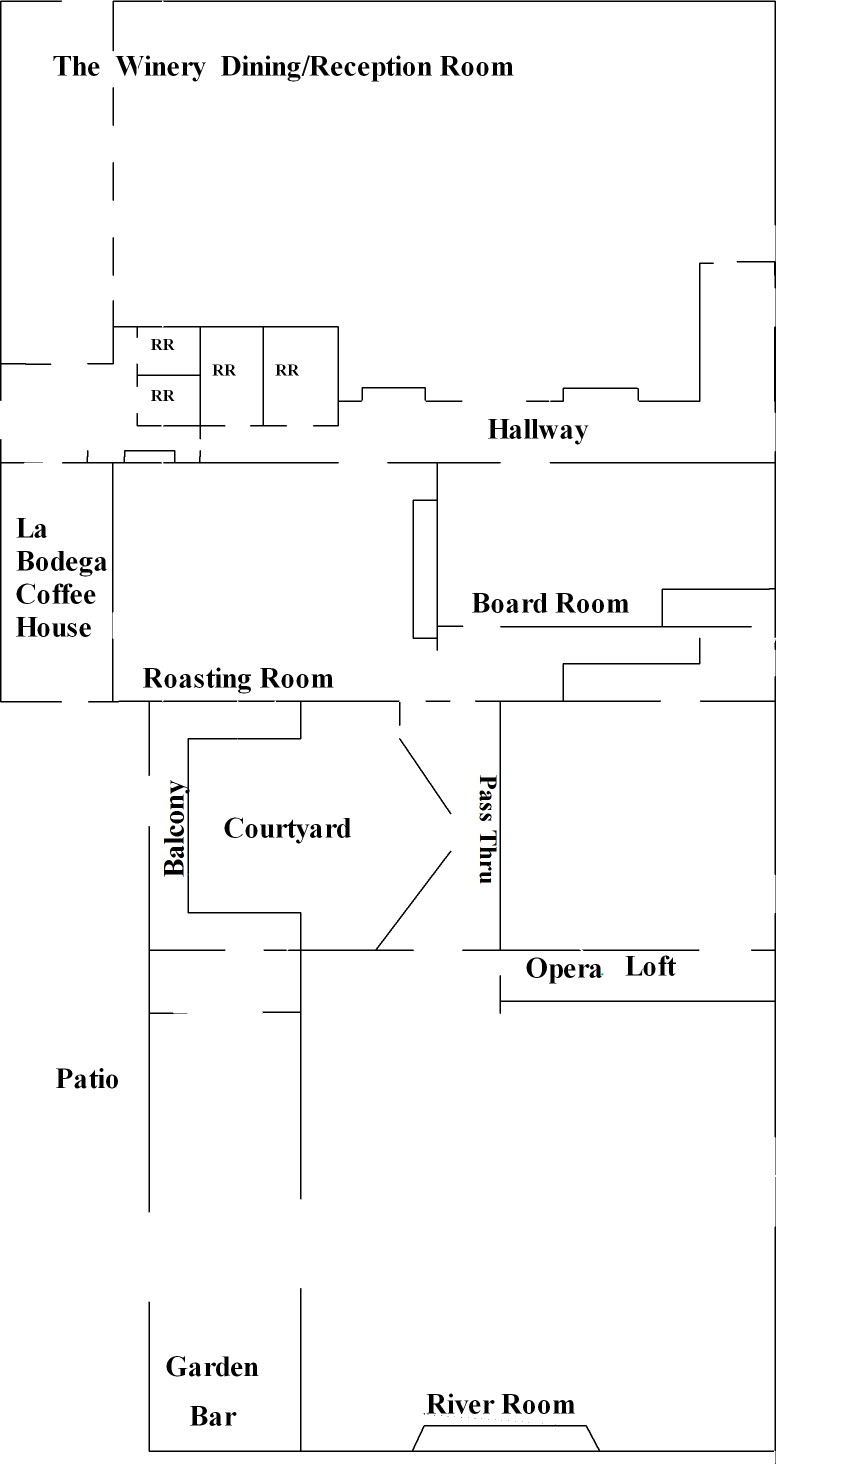 Building layout floorplan showing the Winery Dining/Reception Room, hallway, La Bodega coffee house, roasting room, board room, balcony, courtyard, patio, opera loft, garden bar and river room.